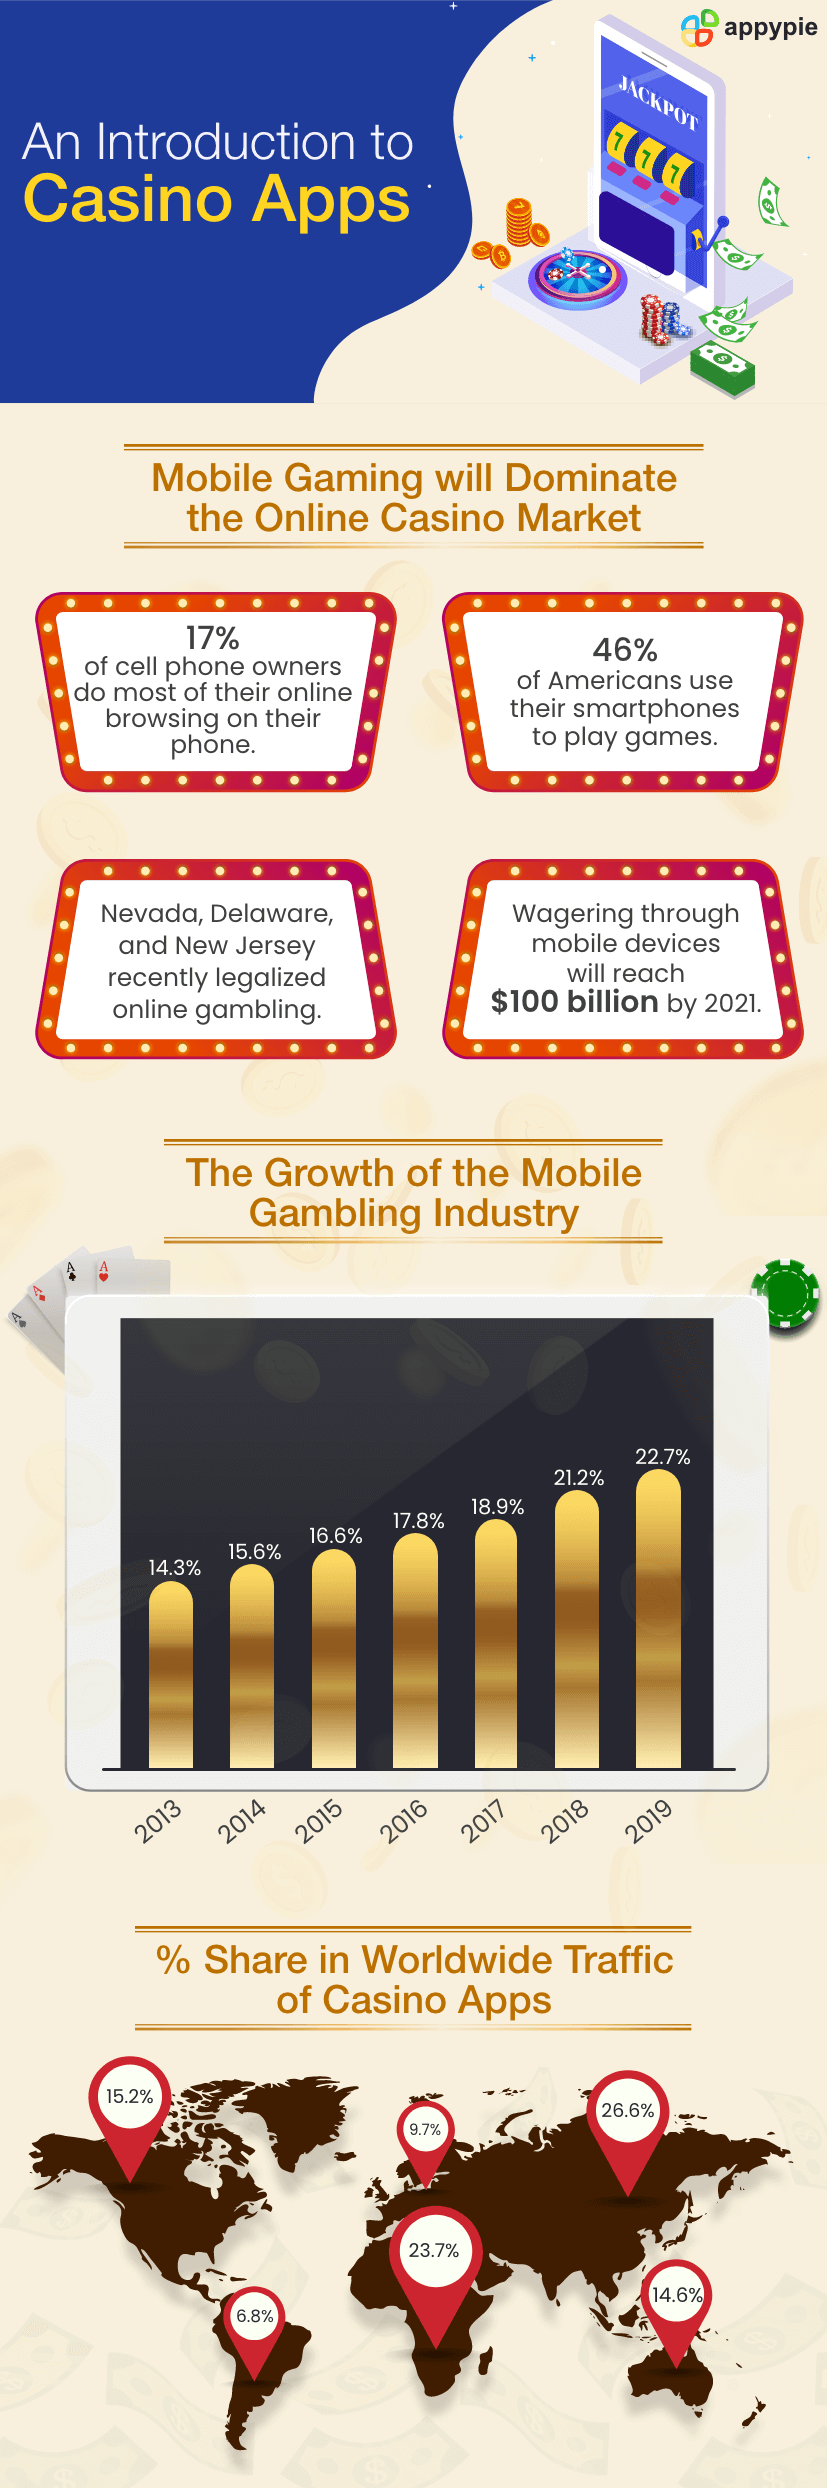 An Introduction to Casino Apps - Appy Pie